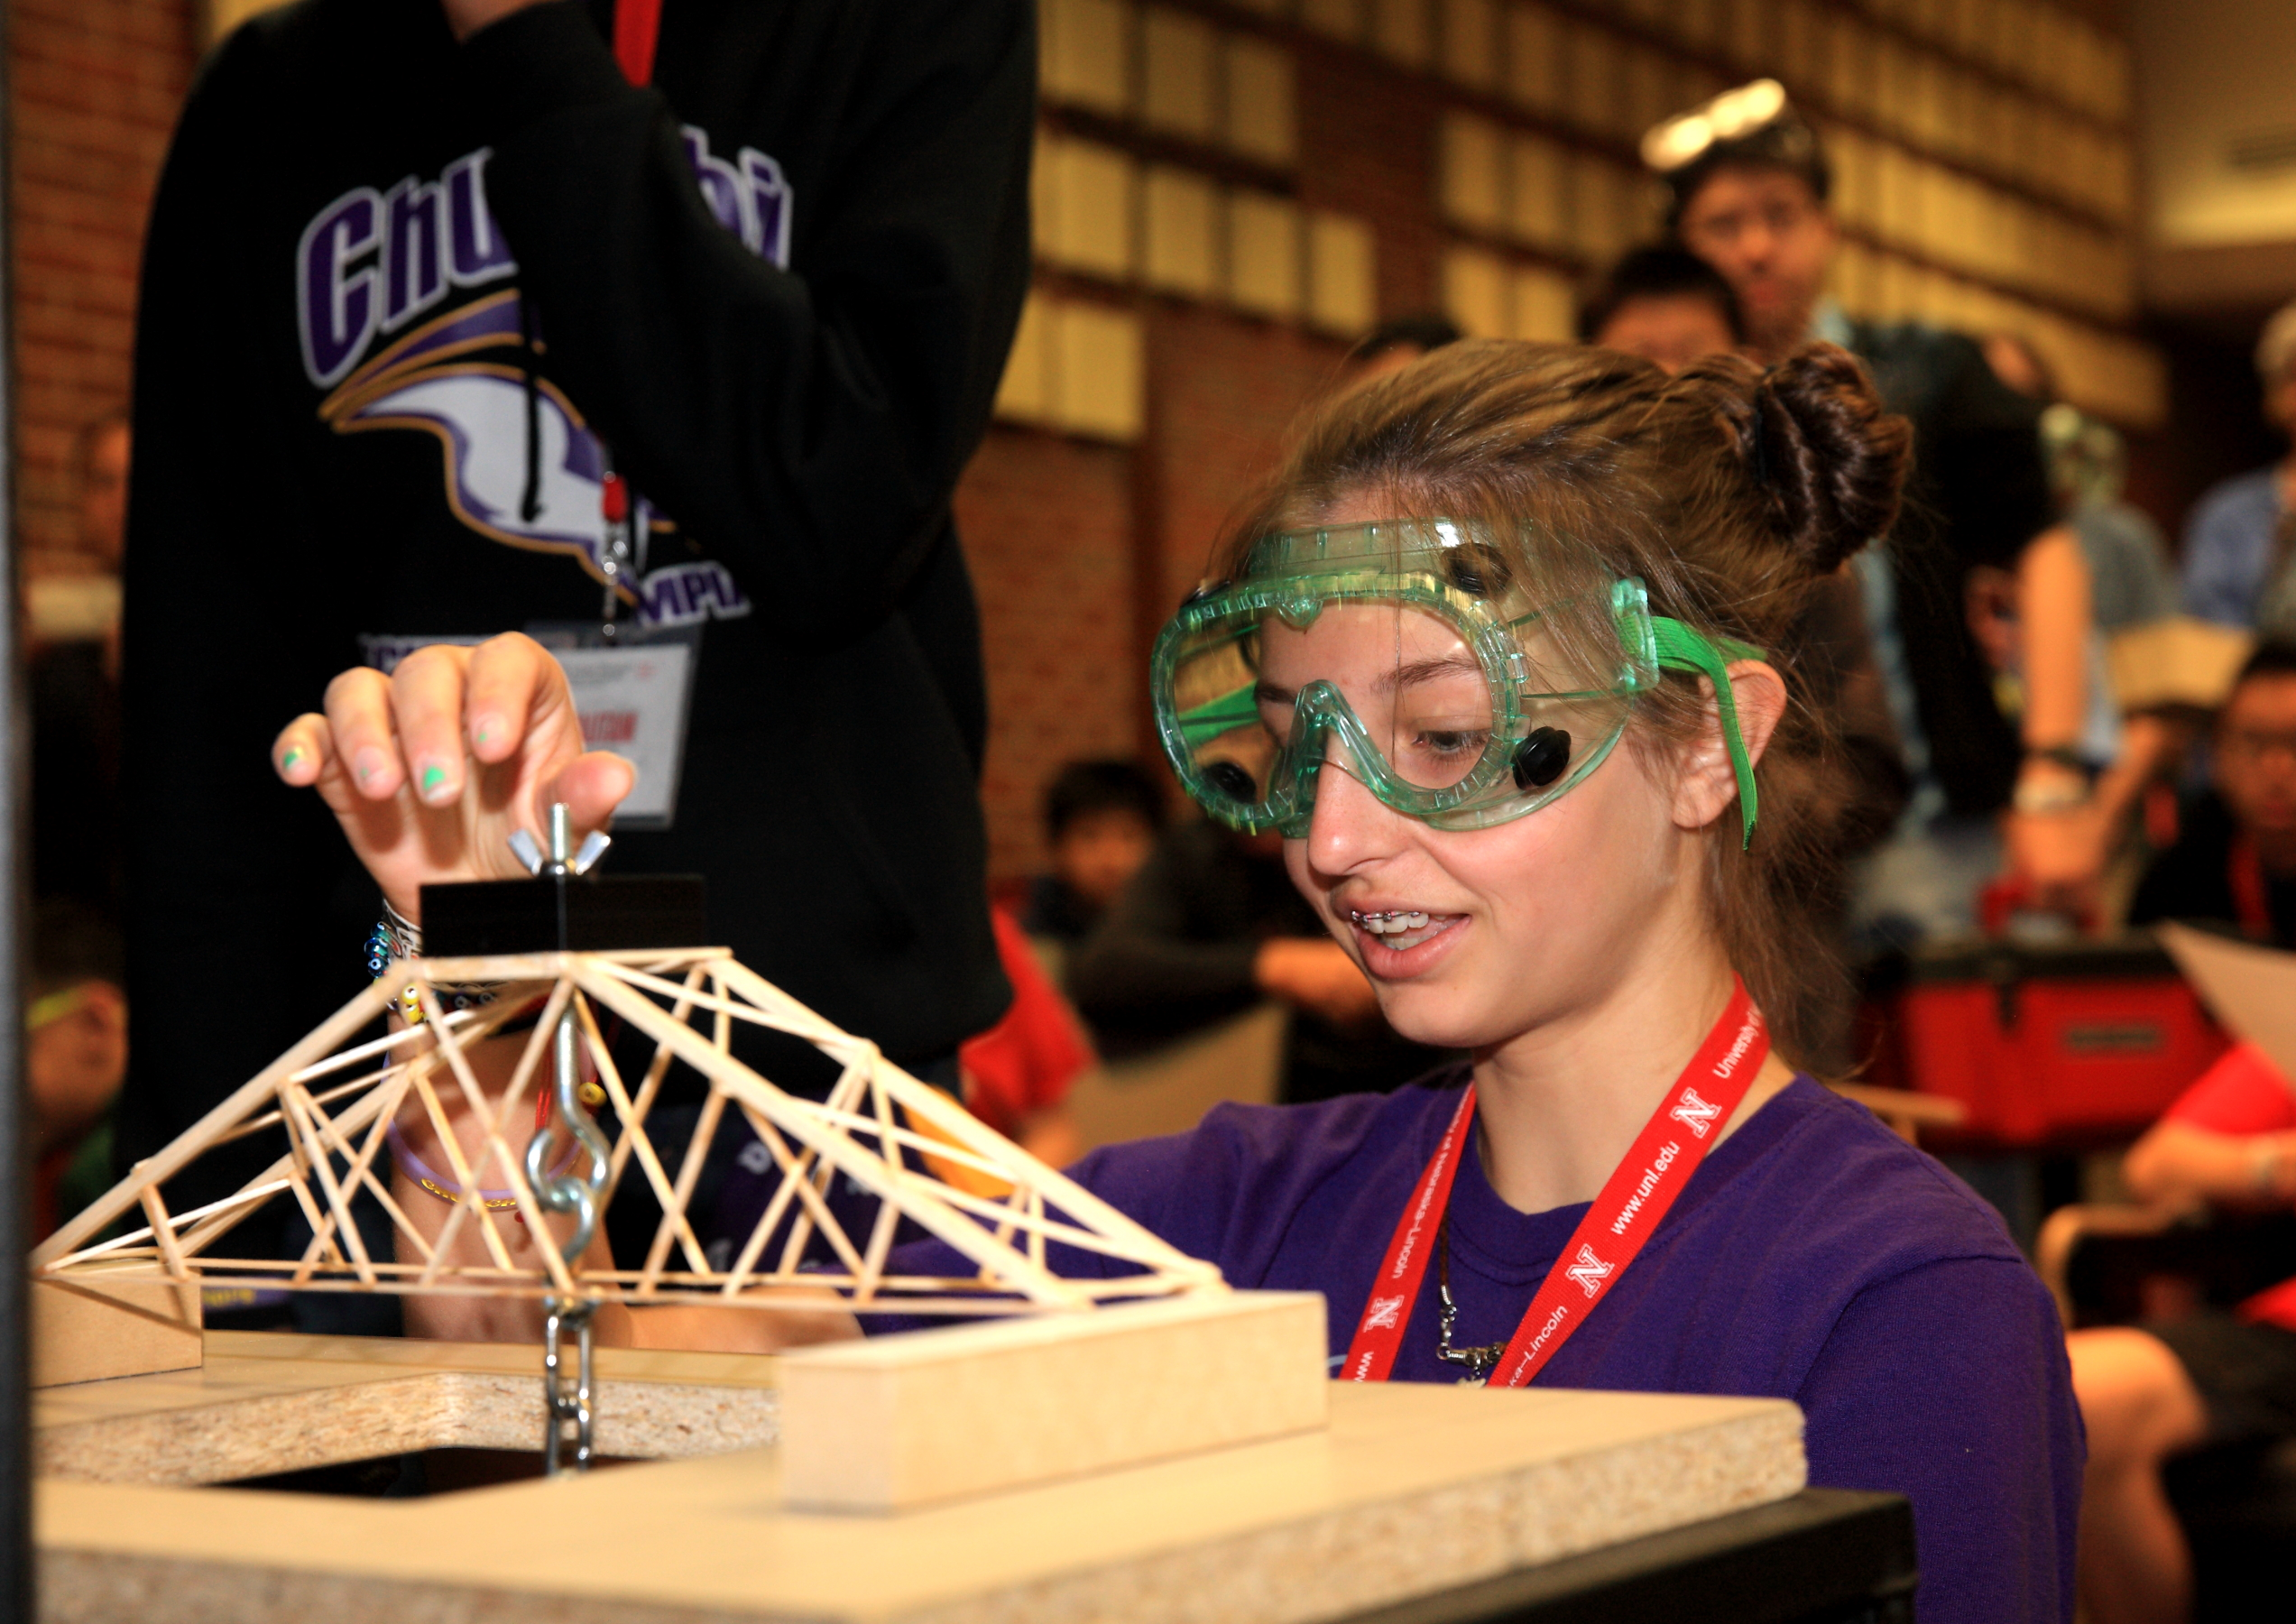 Bridge Building at the 2015 Science Olympiad National Tournament